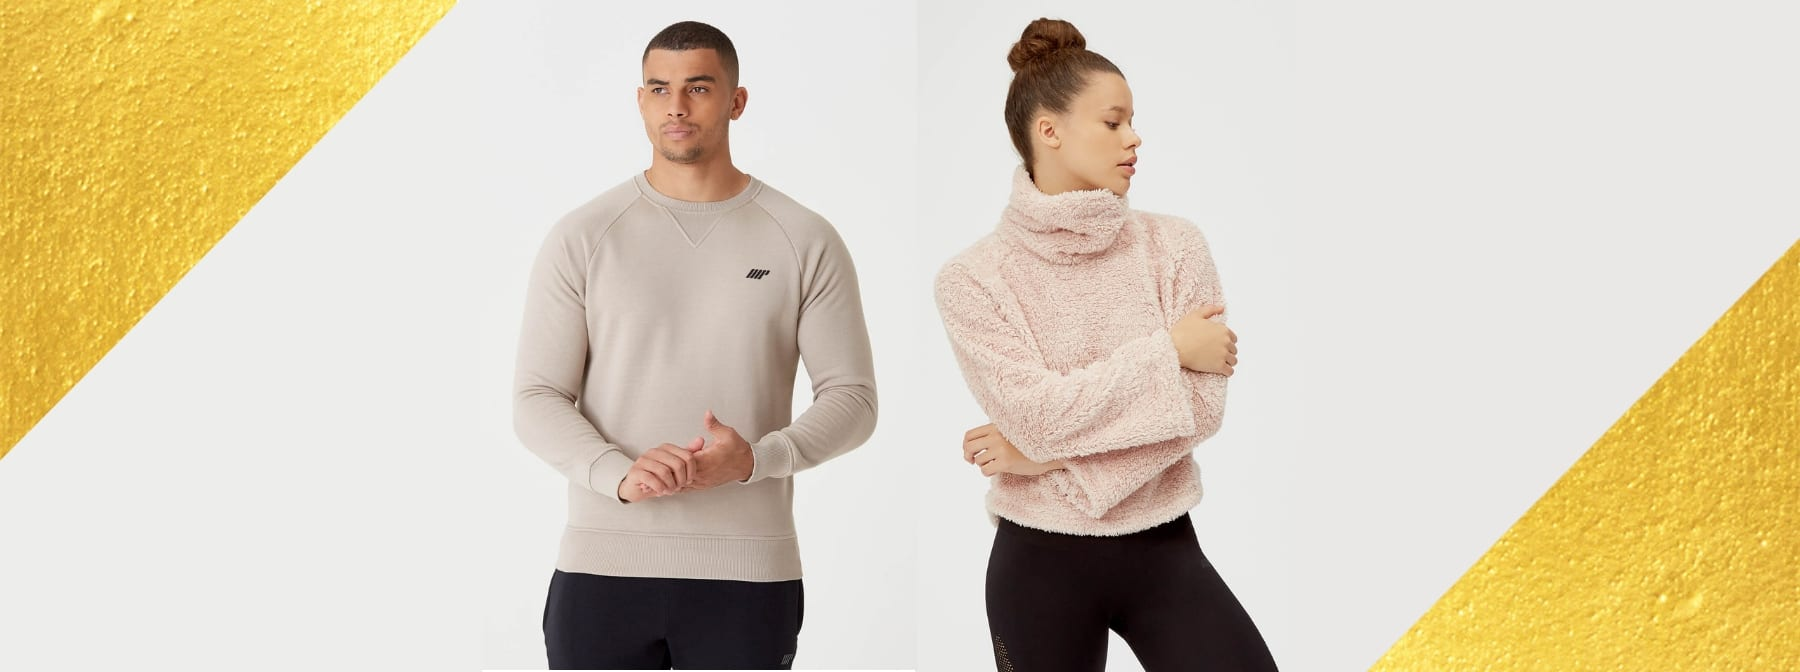 Top 10 Fitness Clothing Gifts For Christmas